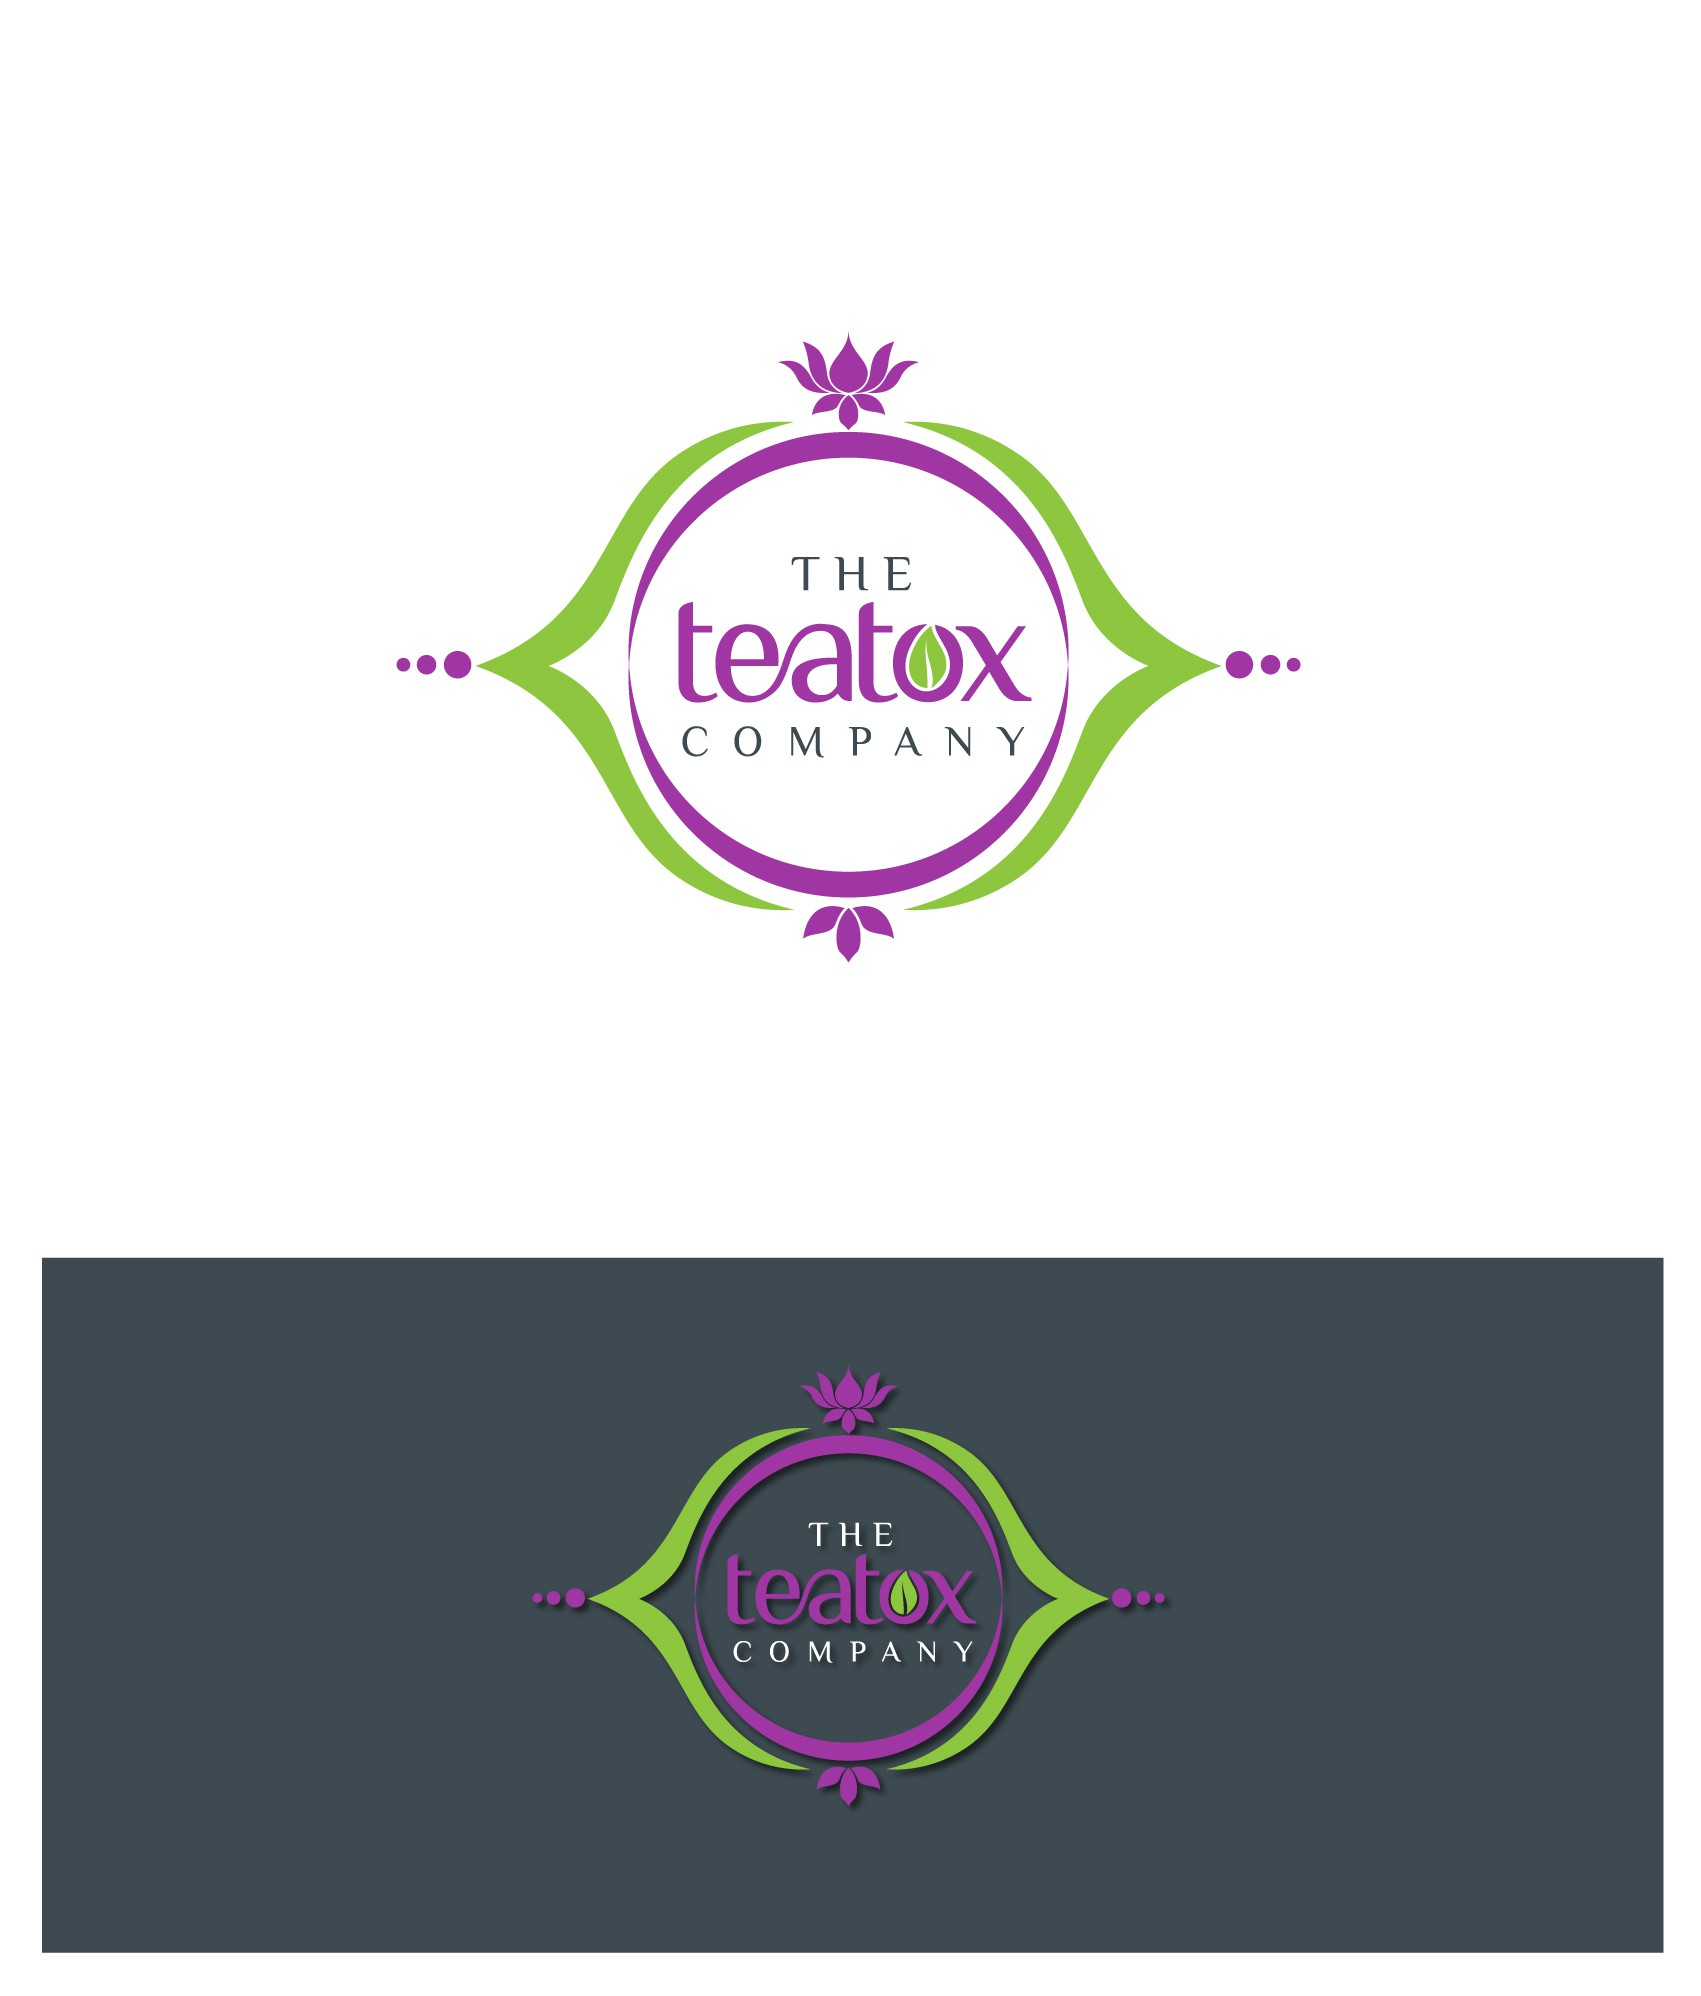 Help The Teatox Company with a new logo